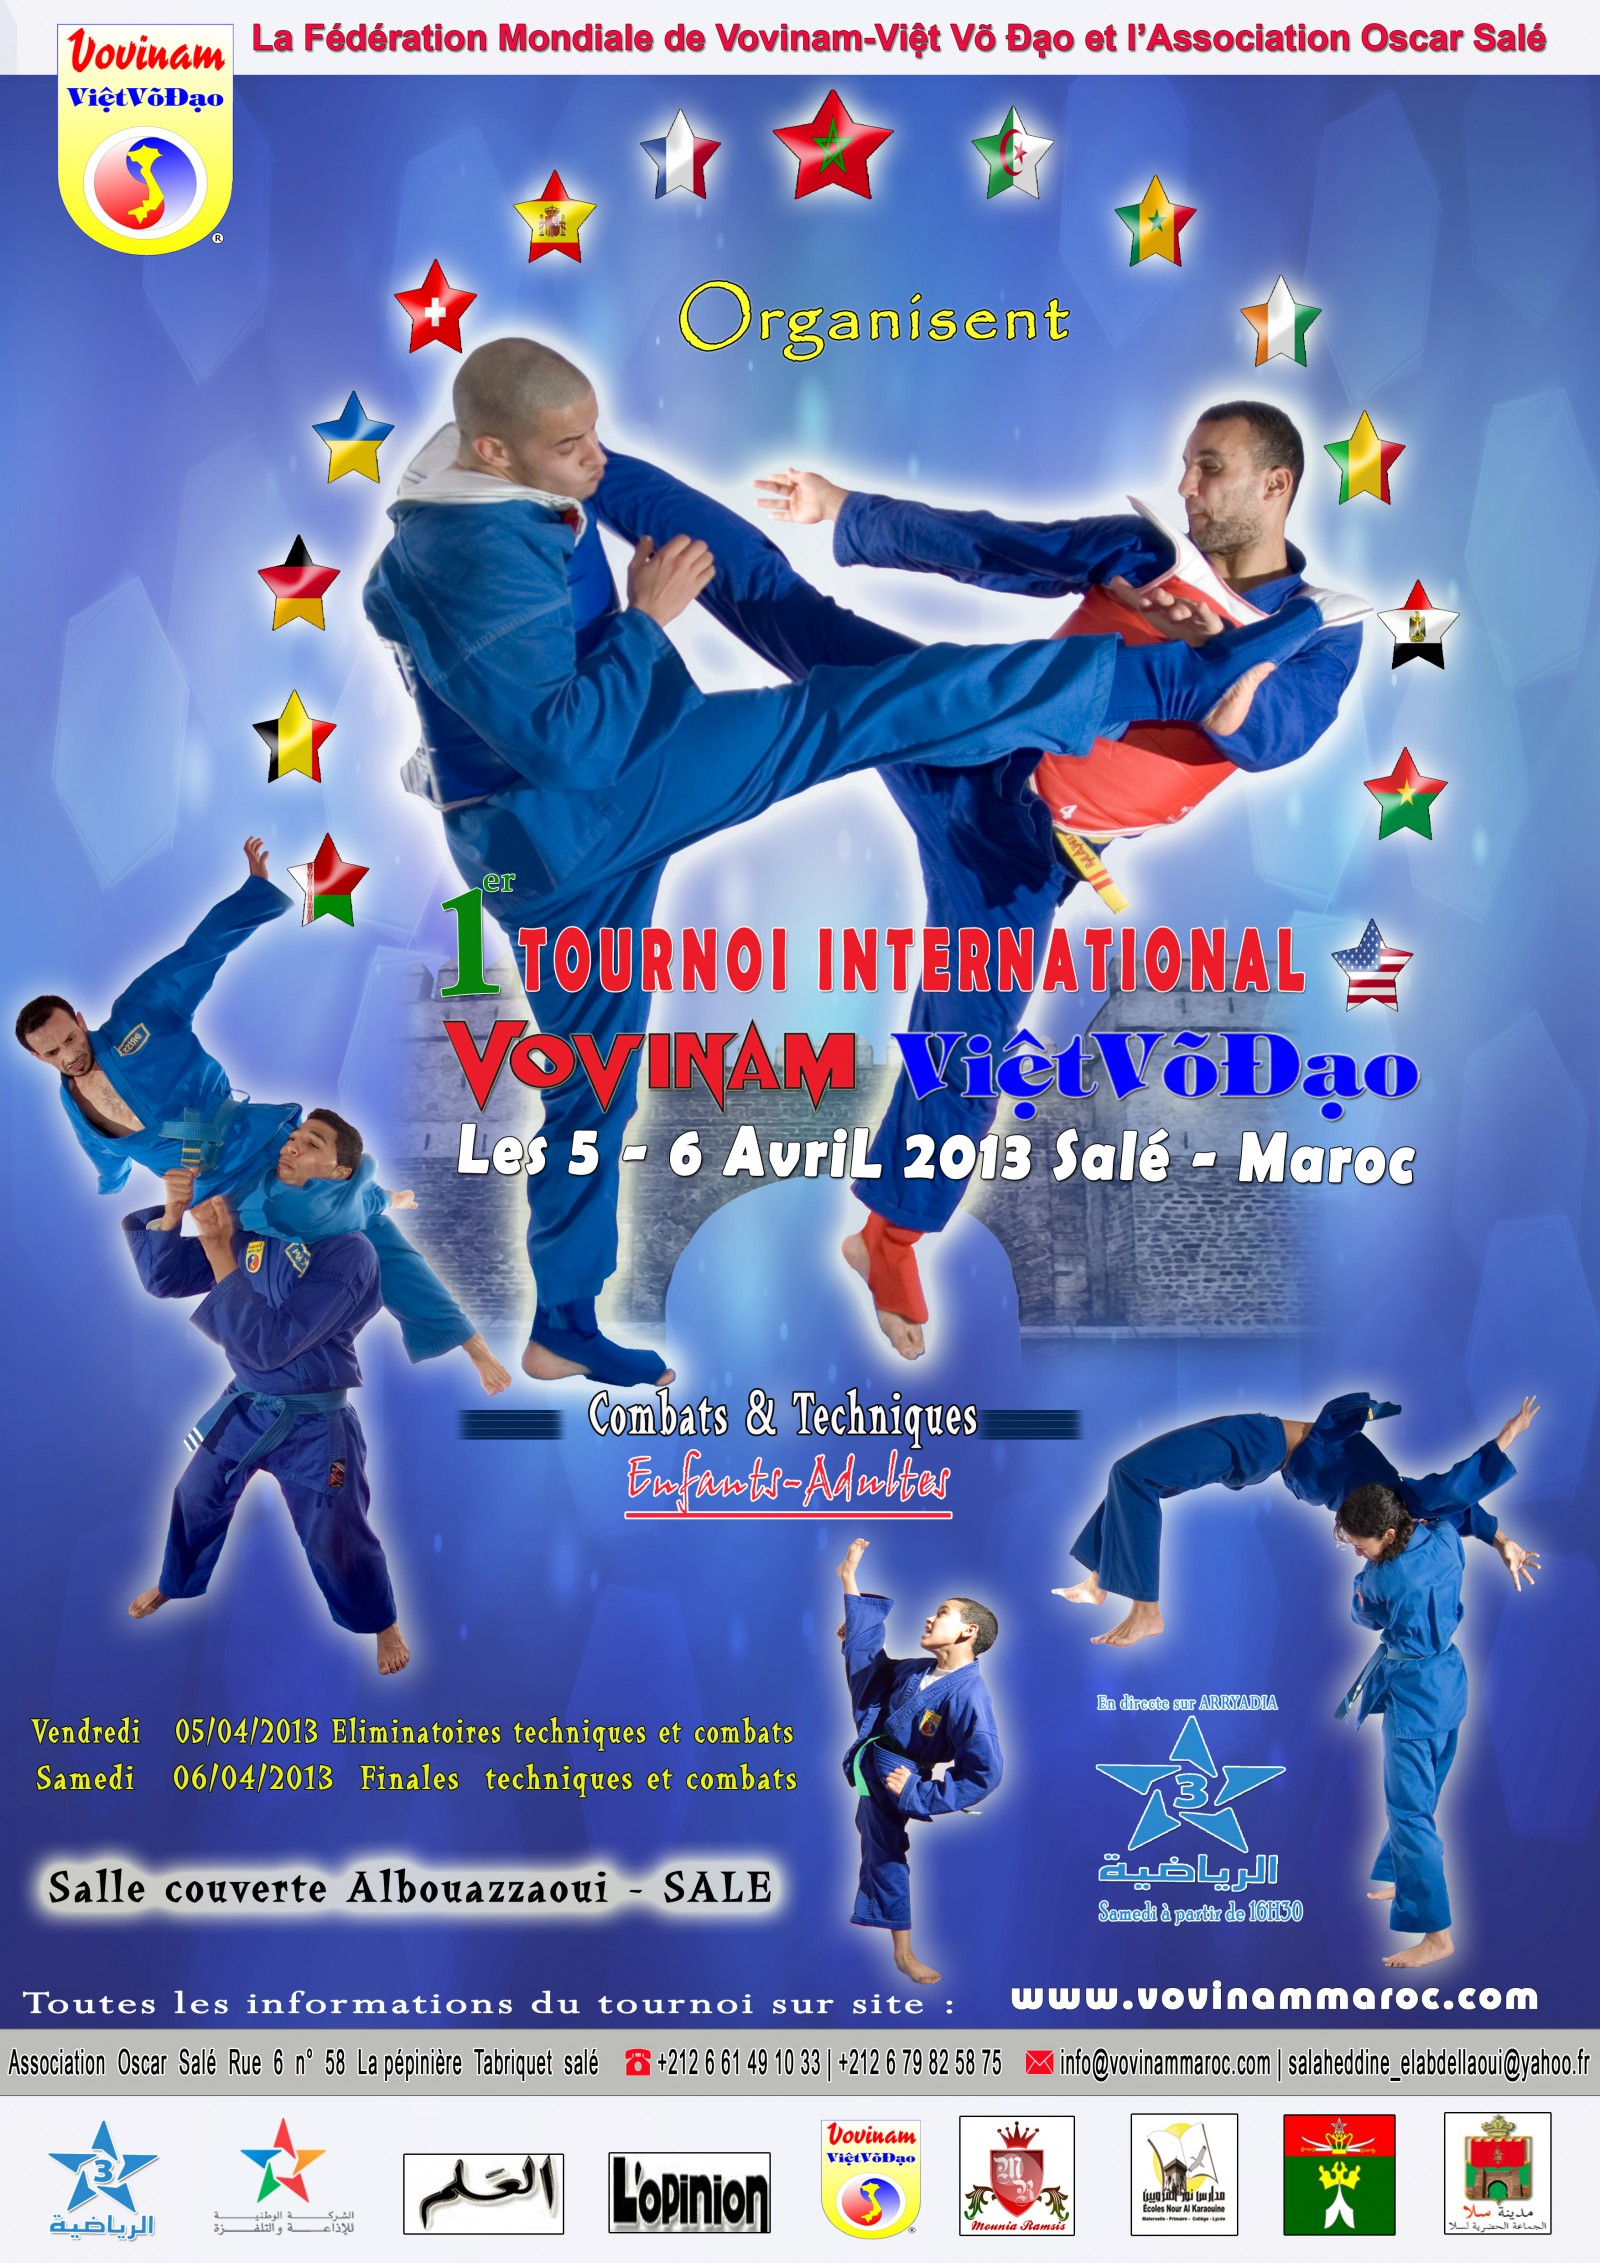 Tournoi international_maroc2013